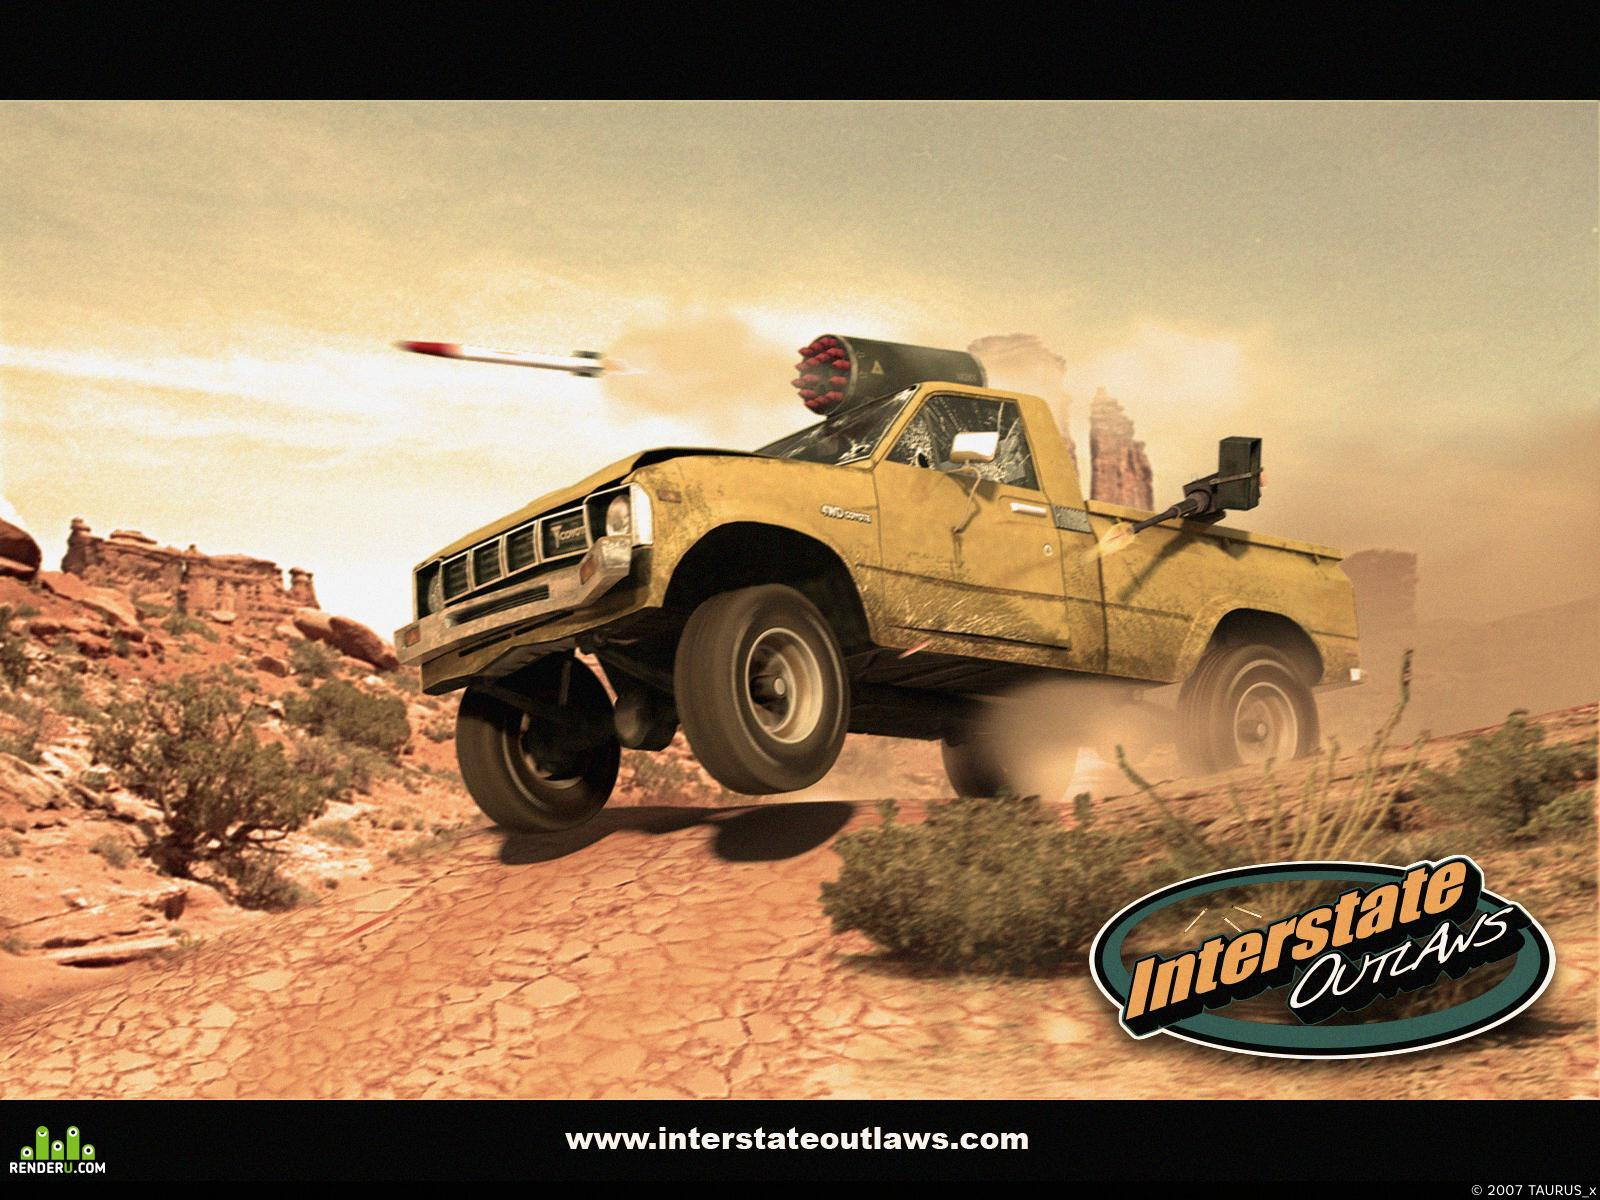 preview Coyote, Interstate Outlaws